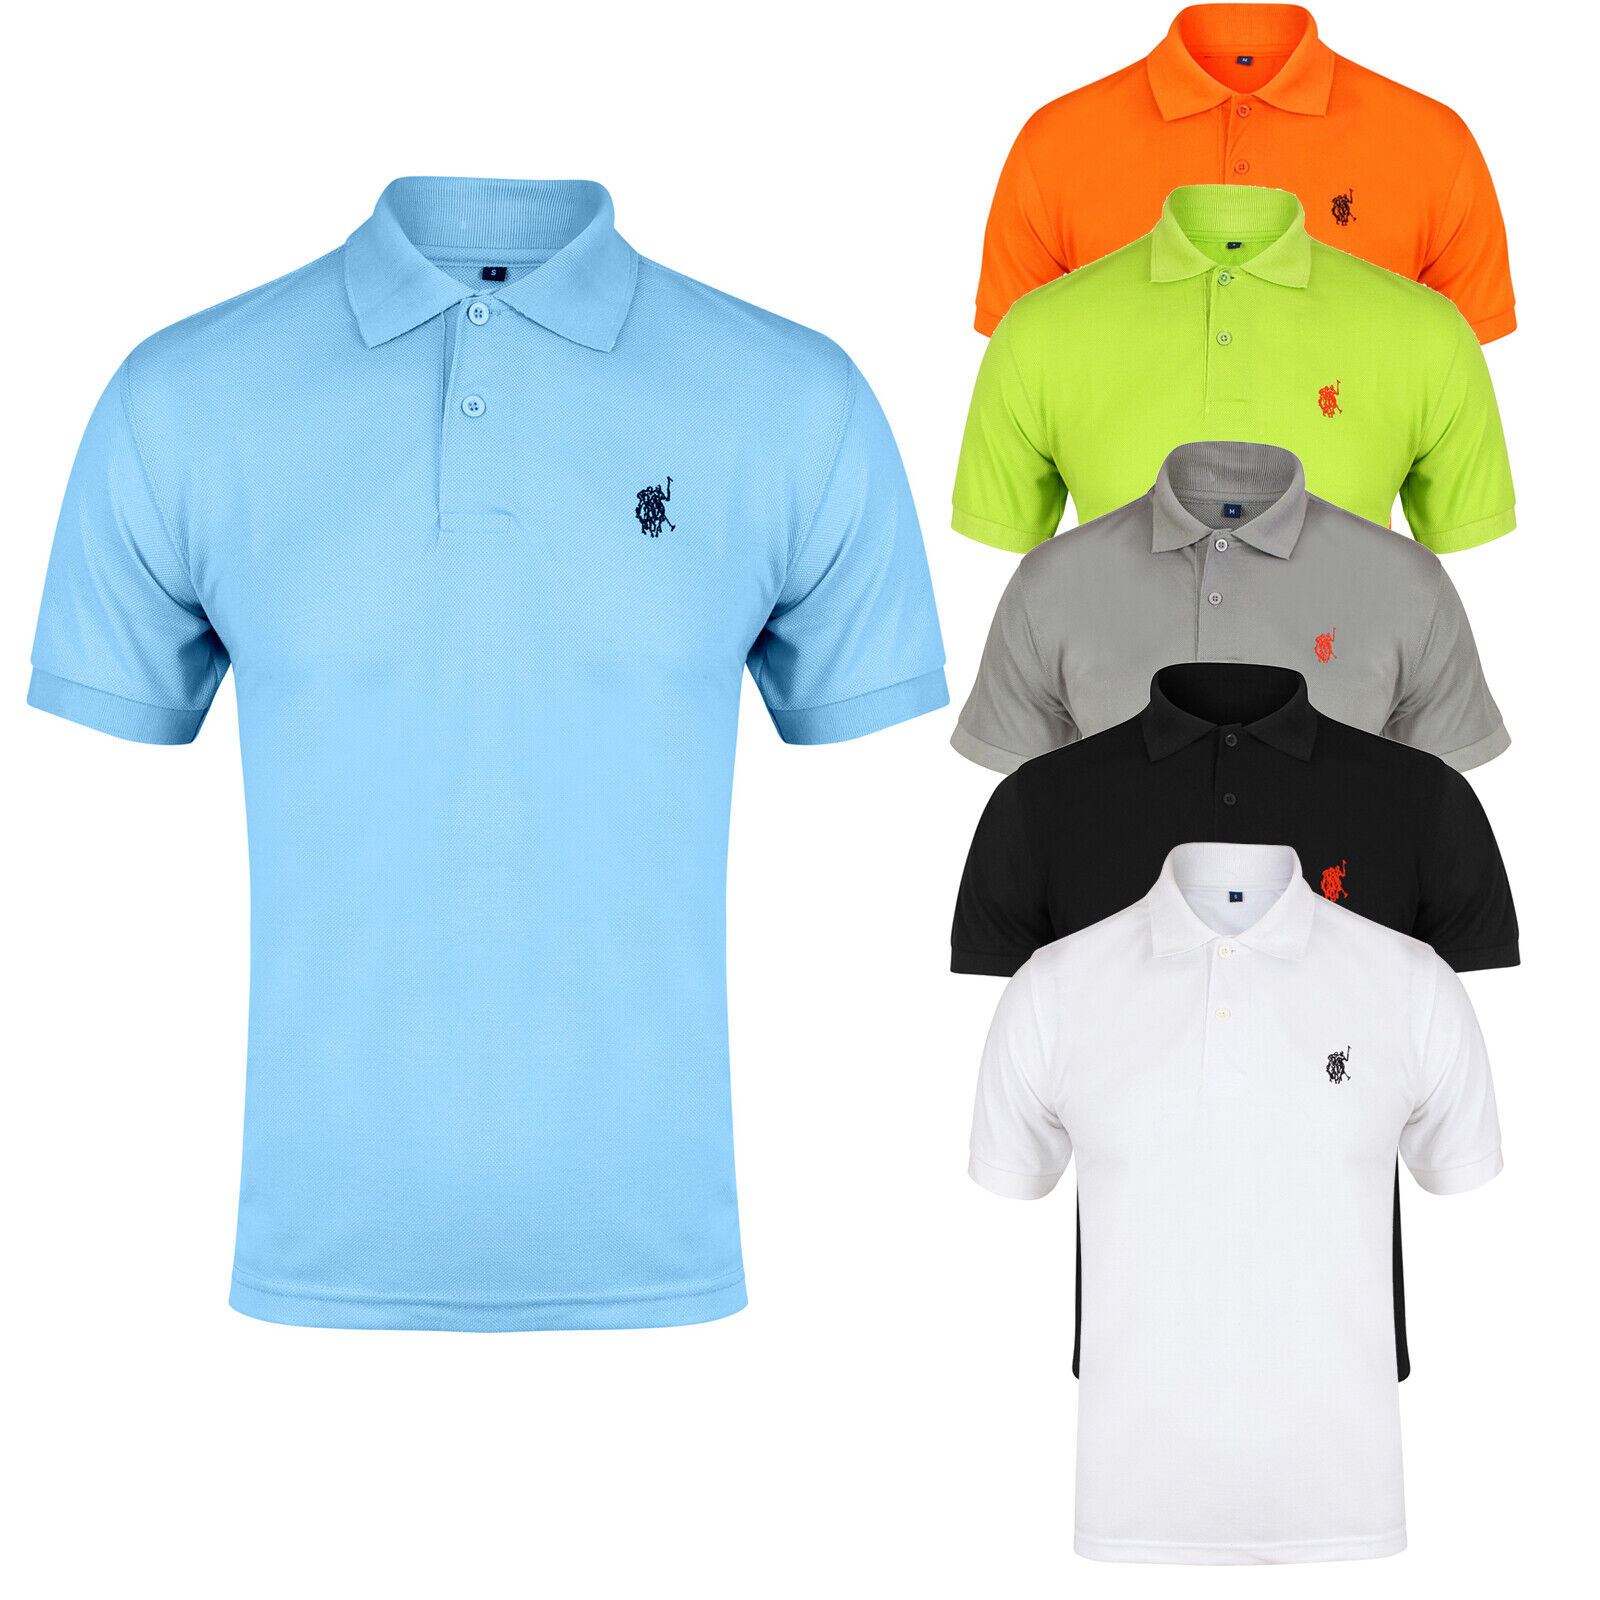 Mens Polo Shirt Short Sleeve Designer T Shirt Top Pique